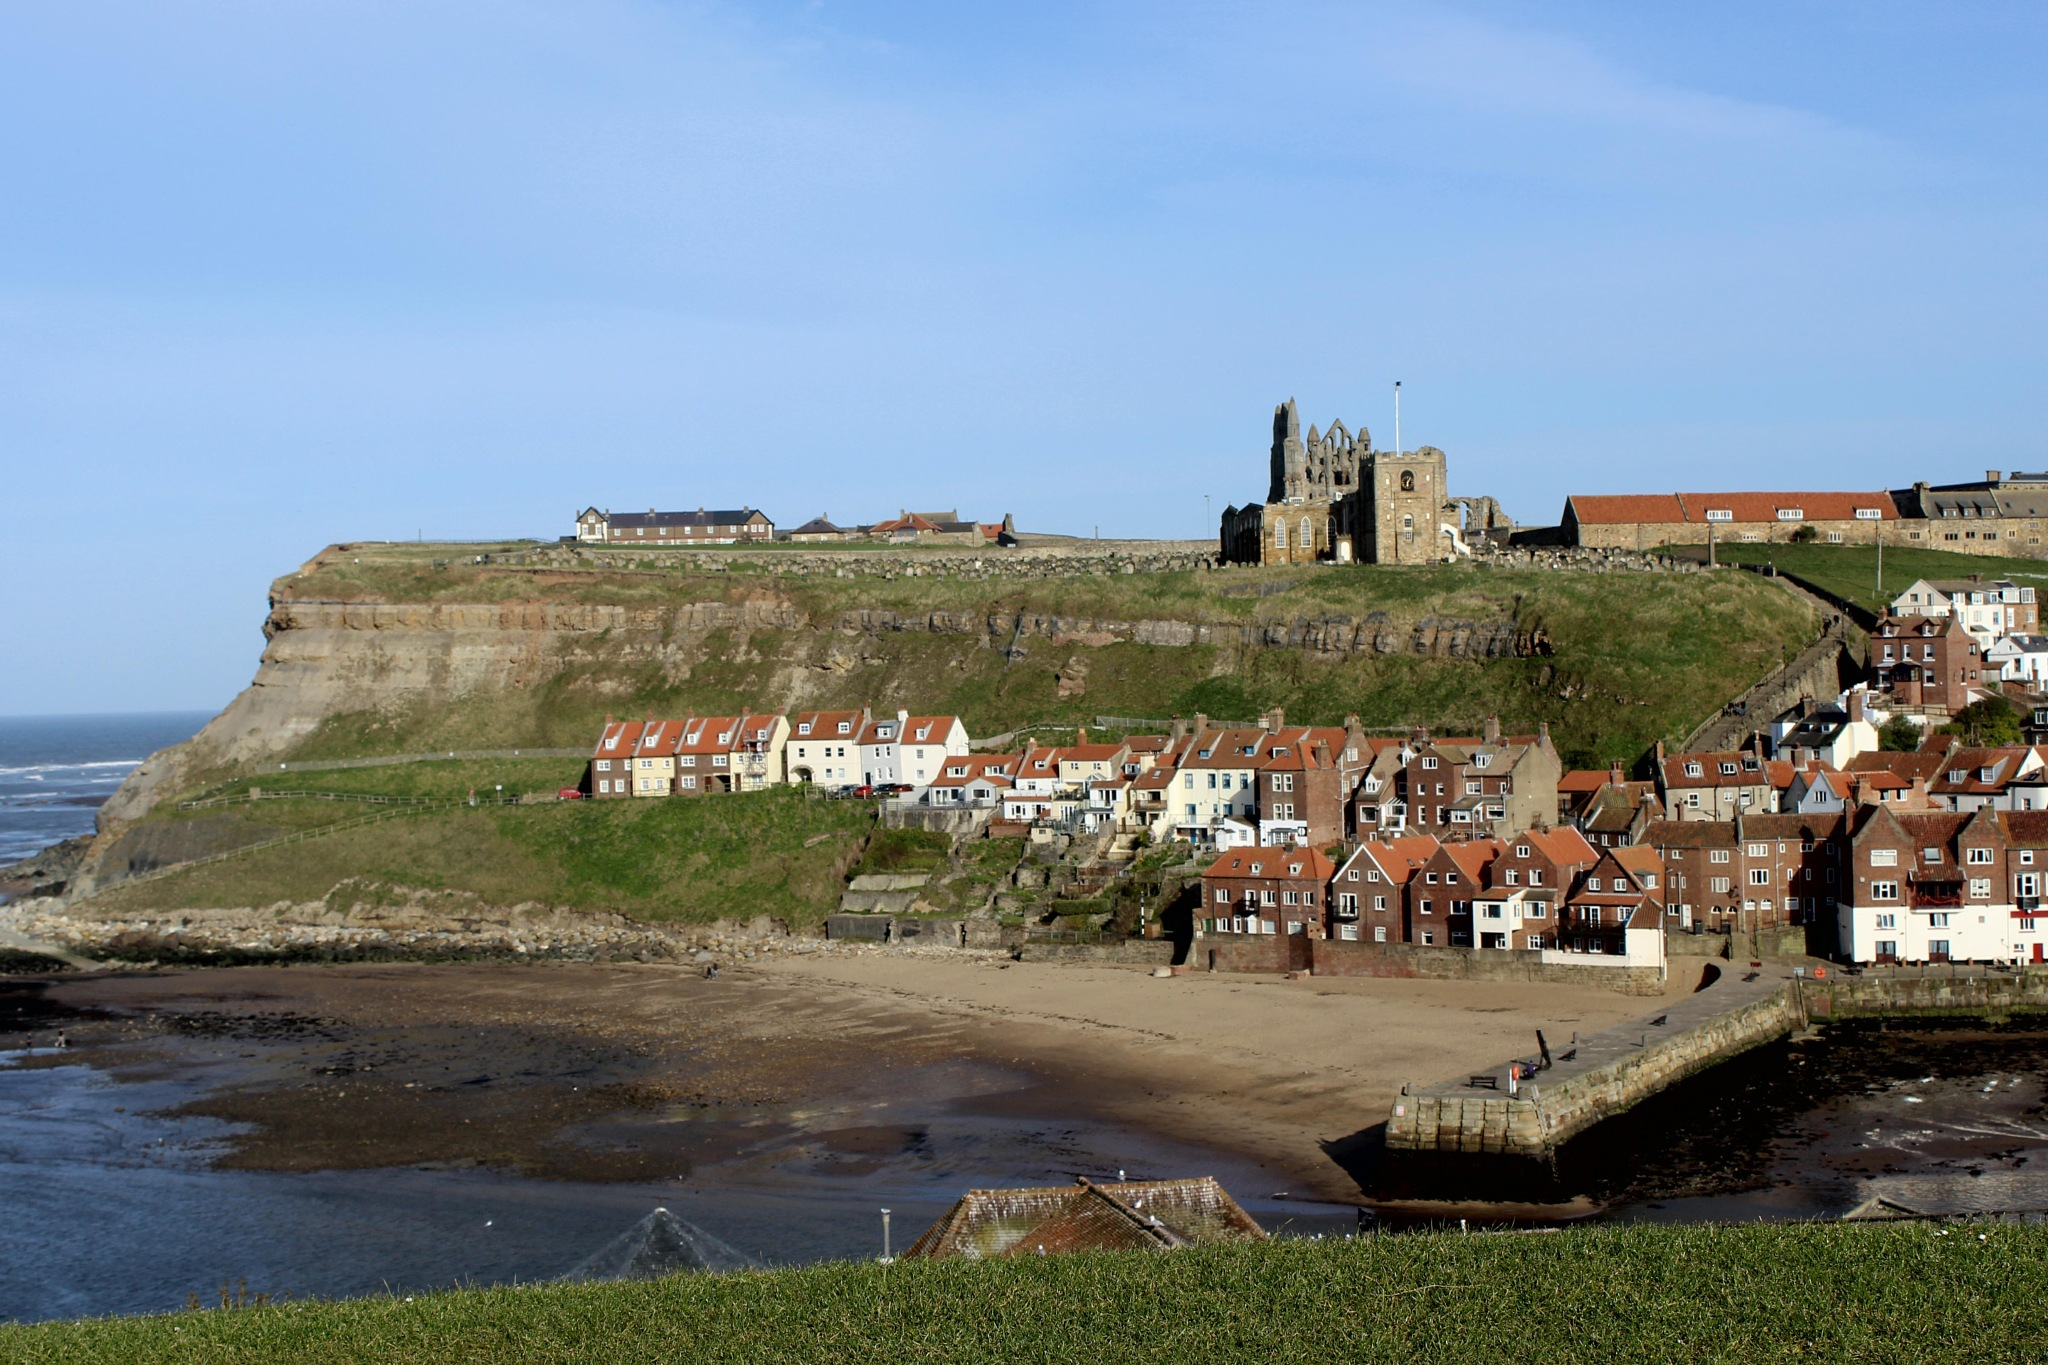 Whitby, Yorkshire, England by geraniumpratense